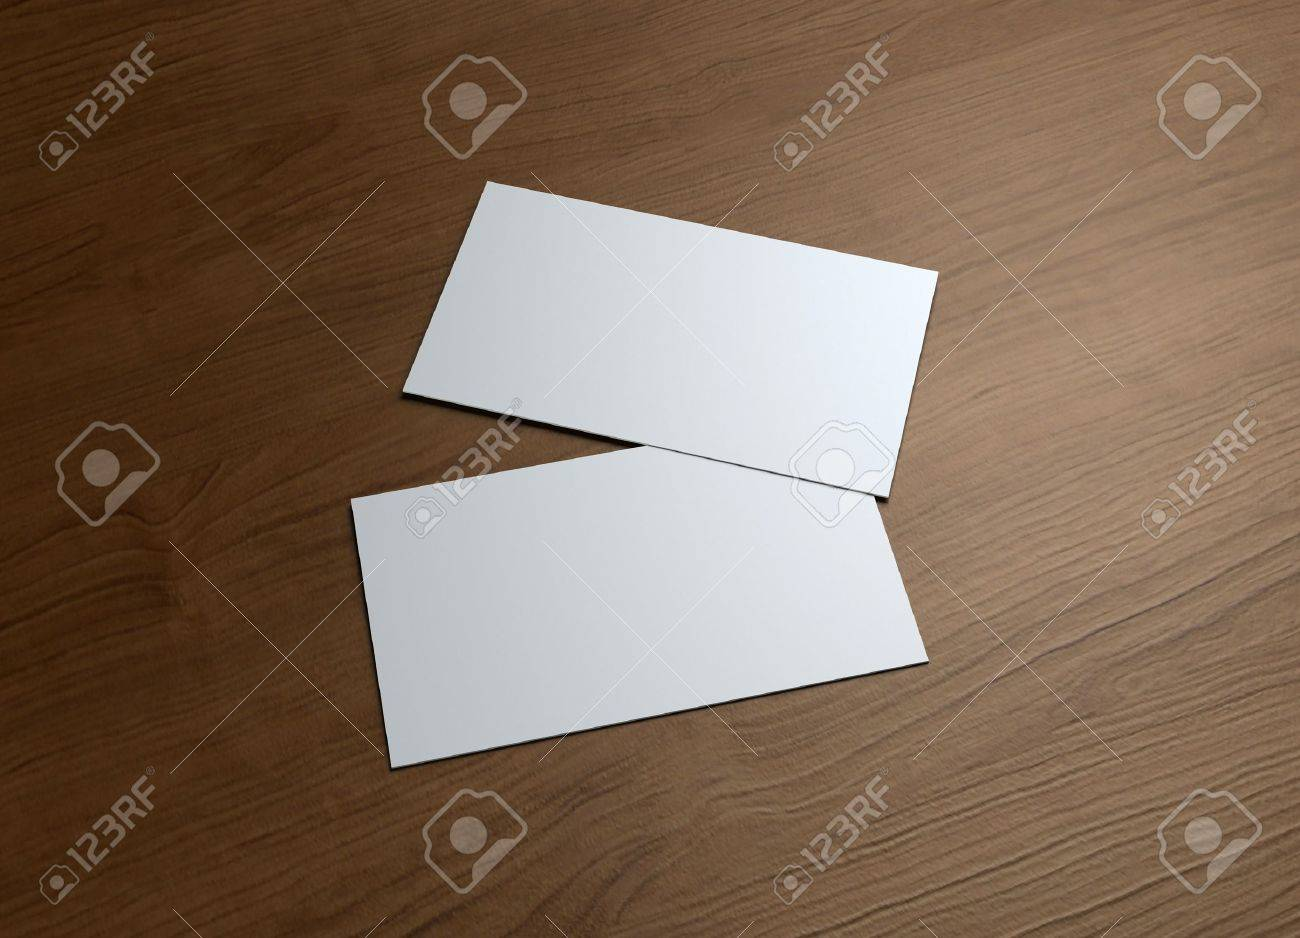 This business card presentation for promotion of Corporate identity - 12980186